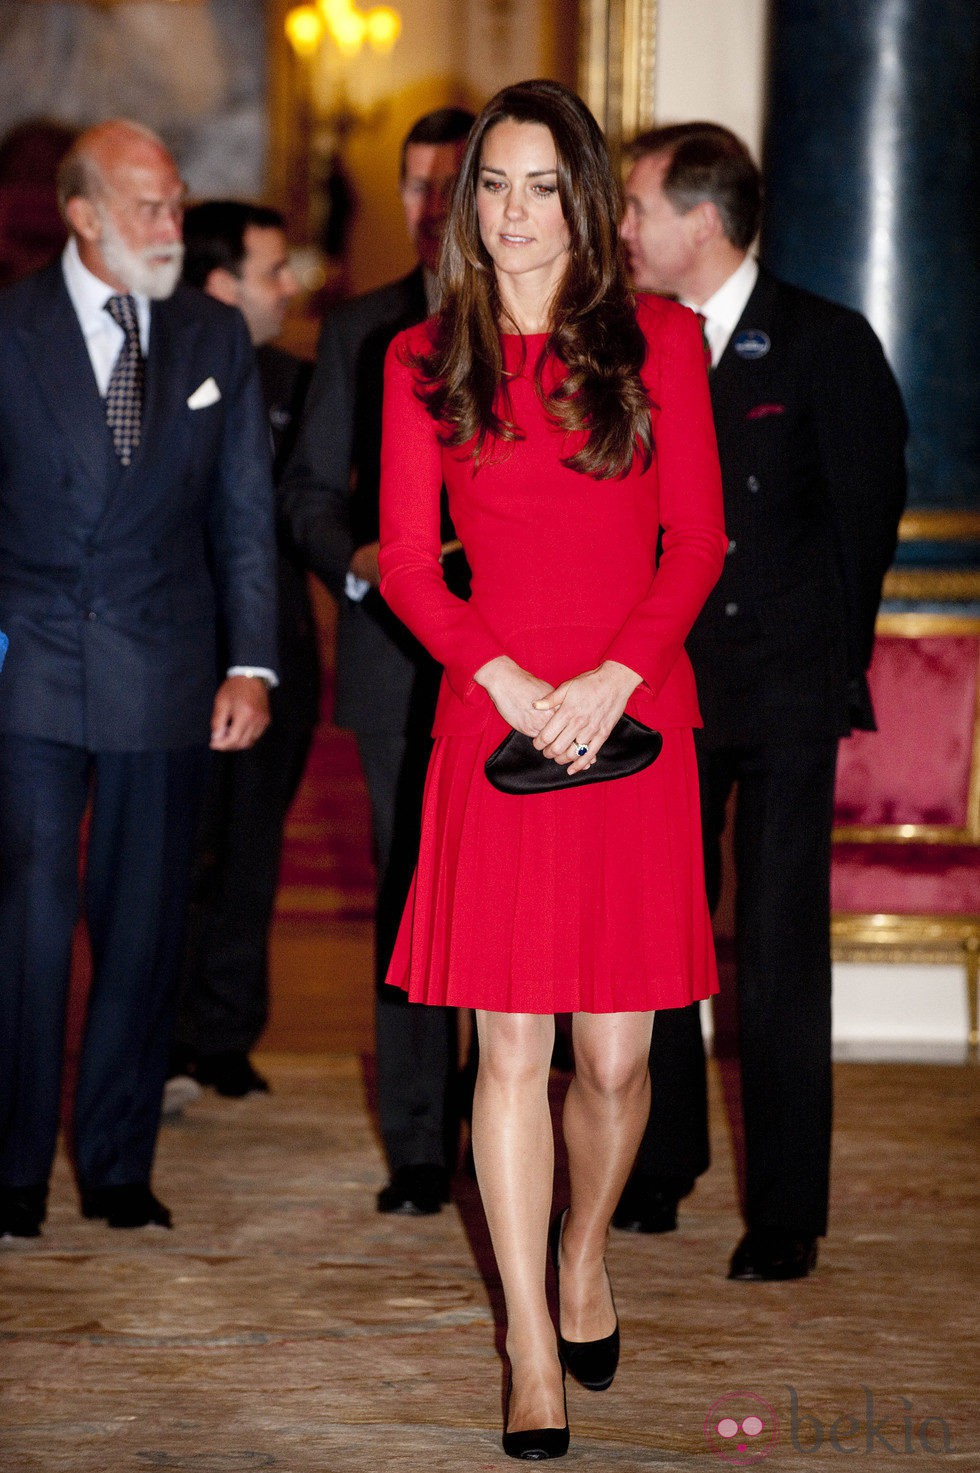 Kate Middleton en una recepción en Buckingham Palace